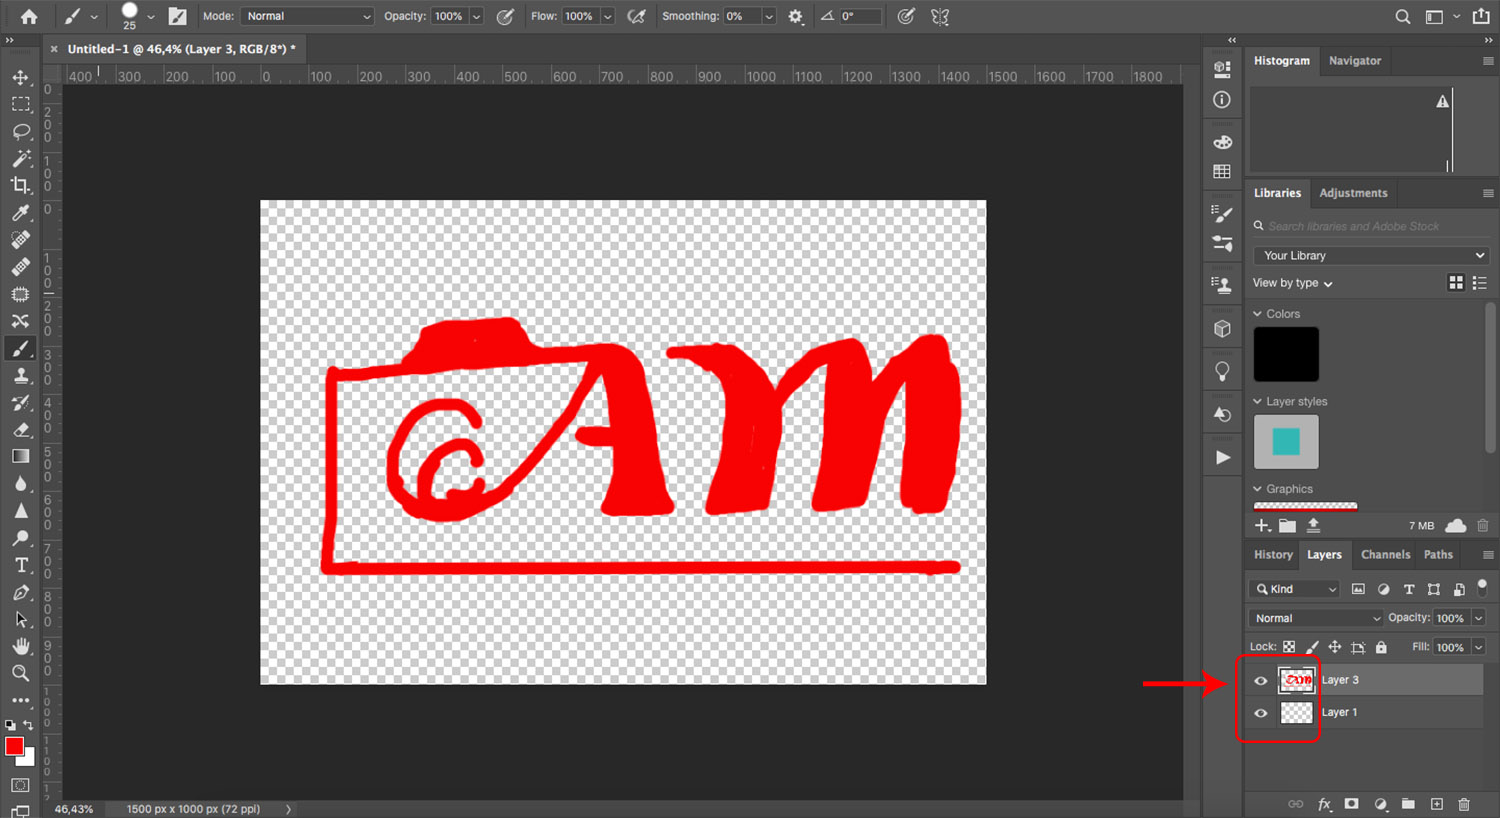 Turn a sketch into a watermark using the pen tool